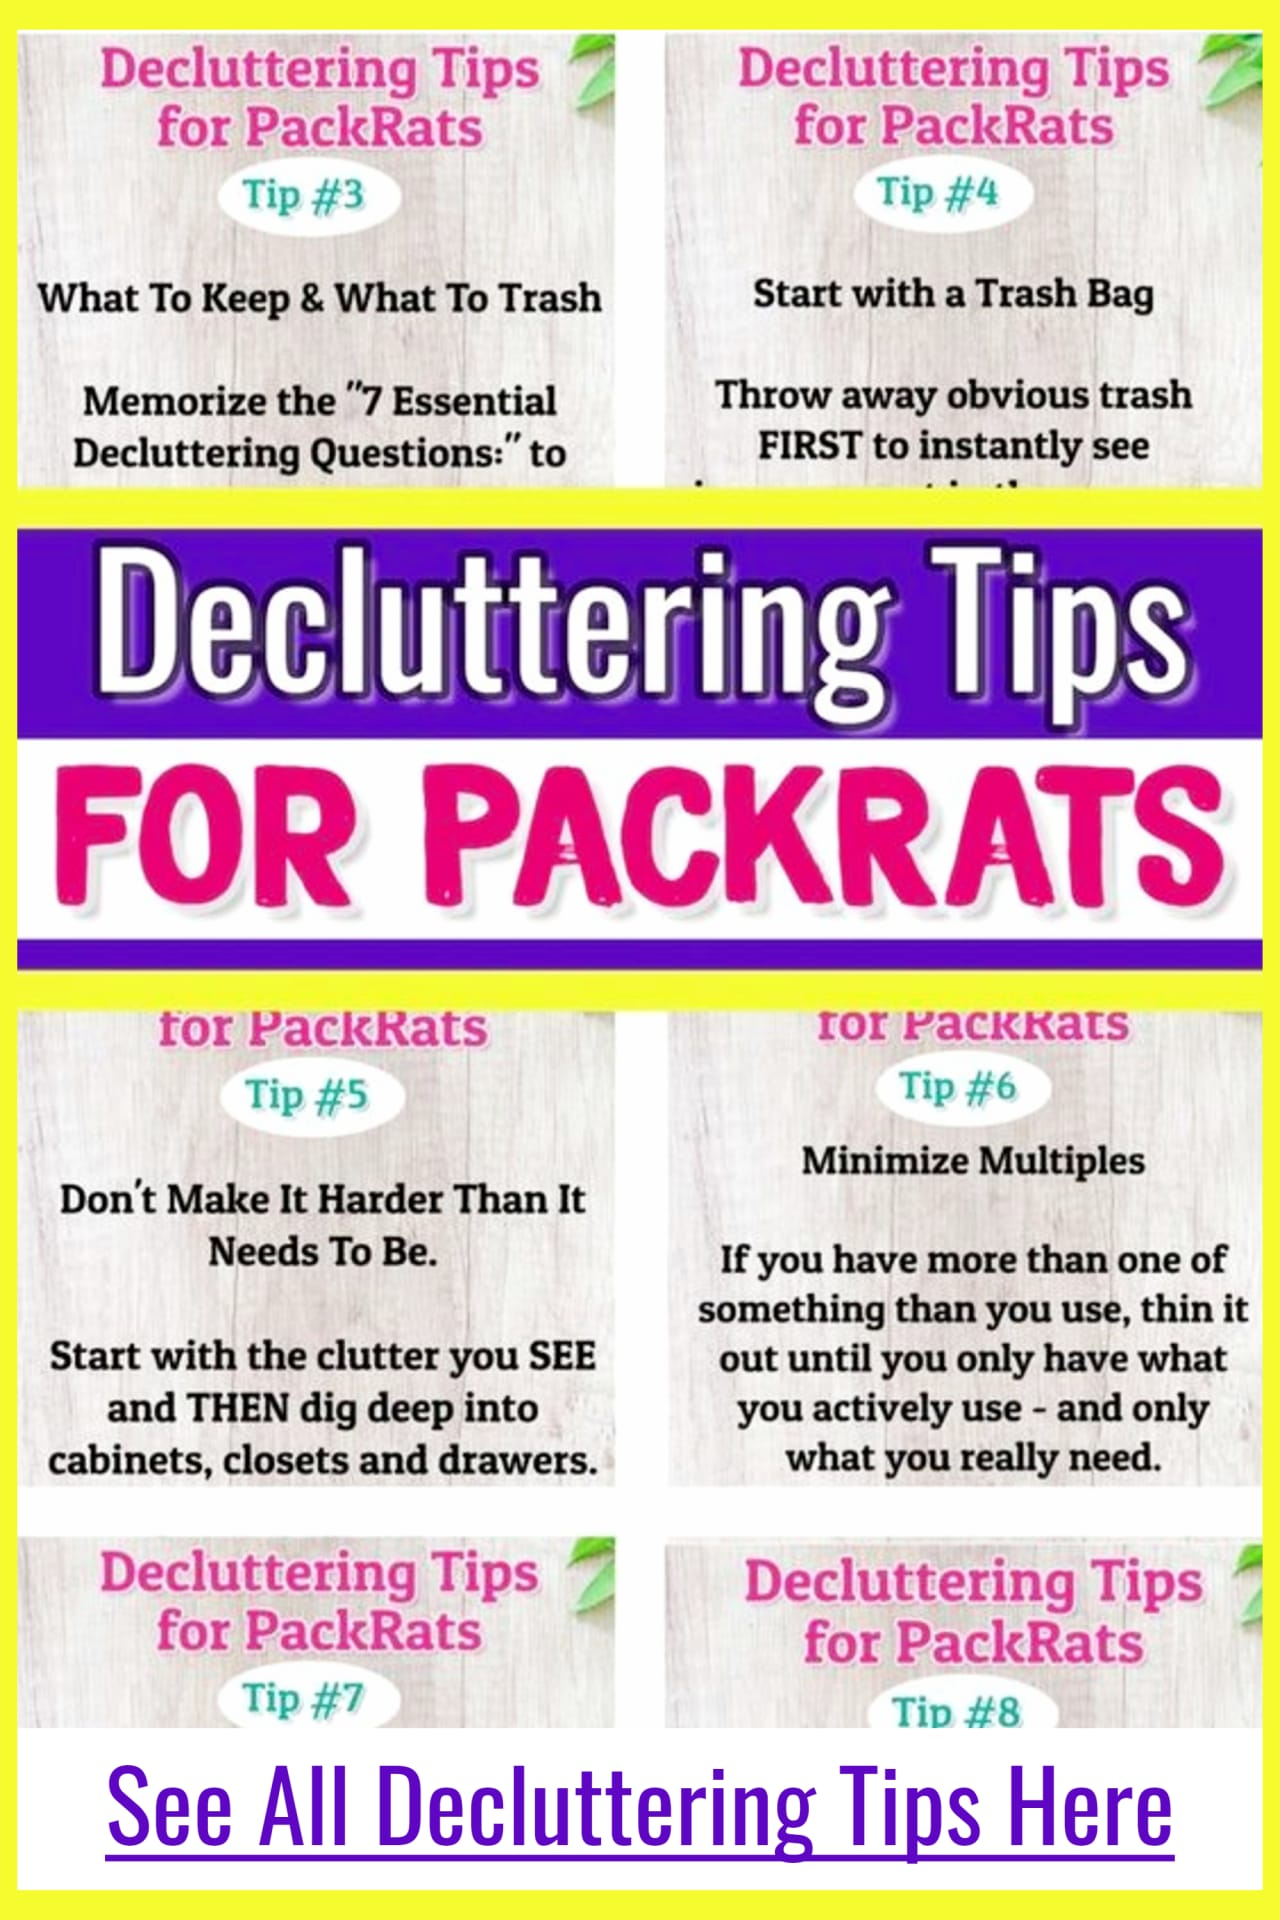 Decluttering tips and Organizing Ideas For The Home - Decluttering Ideas if you're feeling overwhelmed - where to start decluttering and organizing your messy house - decluttering step by step to declutter and organize without feeling overwhelmed